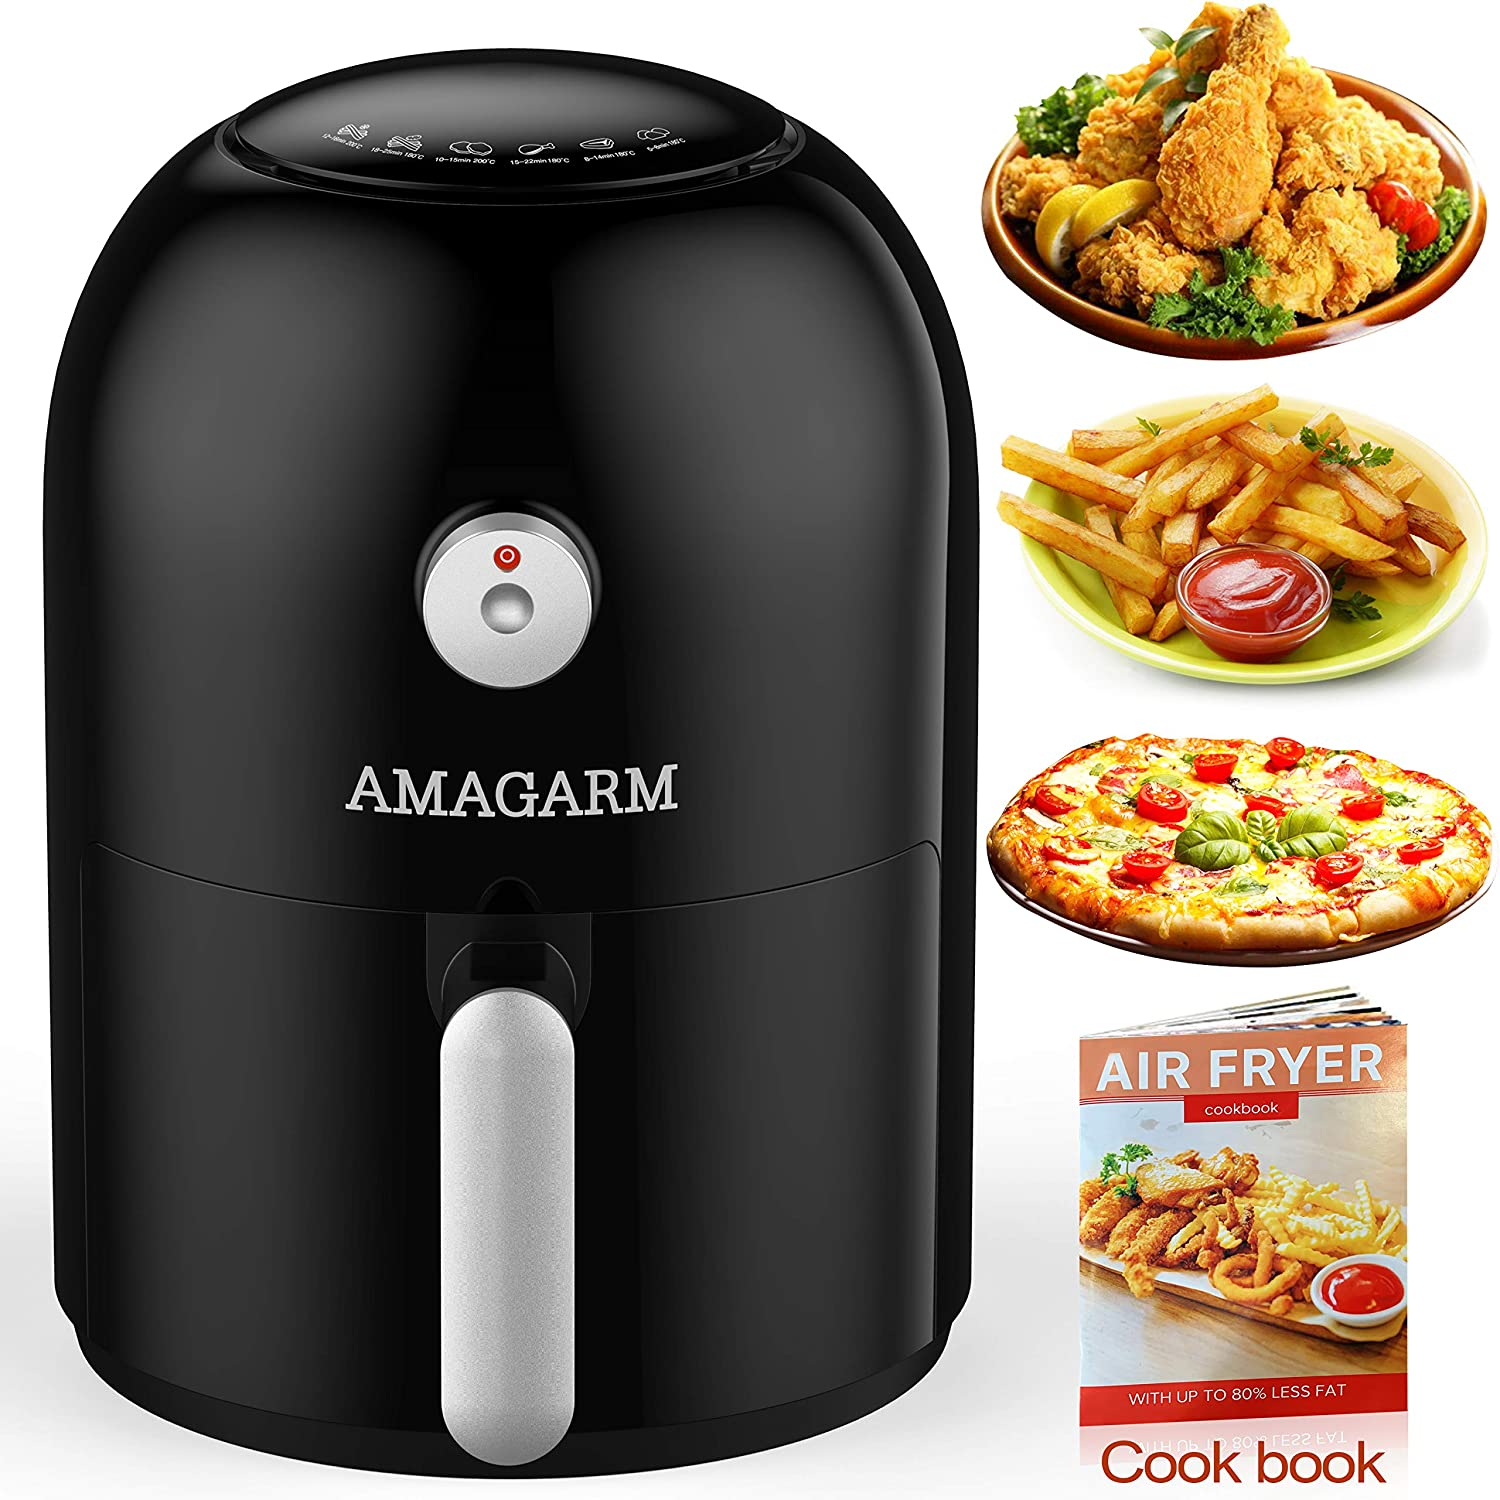 Updated 2019 Version Compact Air Fryer 1.6 Quart, 800 Watt Electric Air Fryer Oven Cooker with Temperature Control, Non Stick Fry Basket, Recipe Guide Auto Shut off Feature